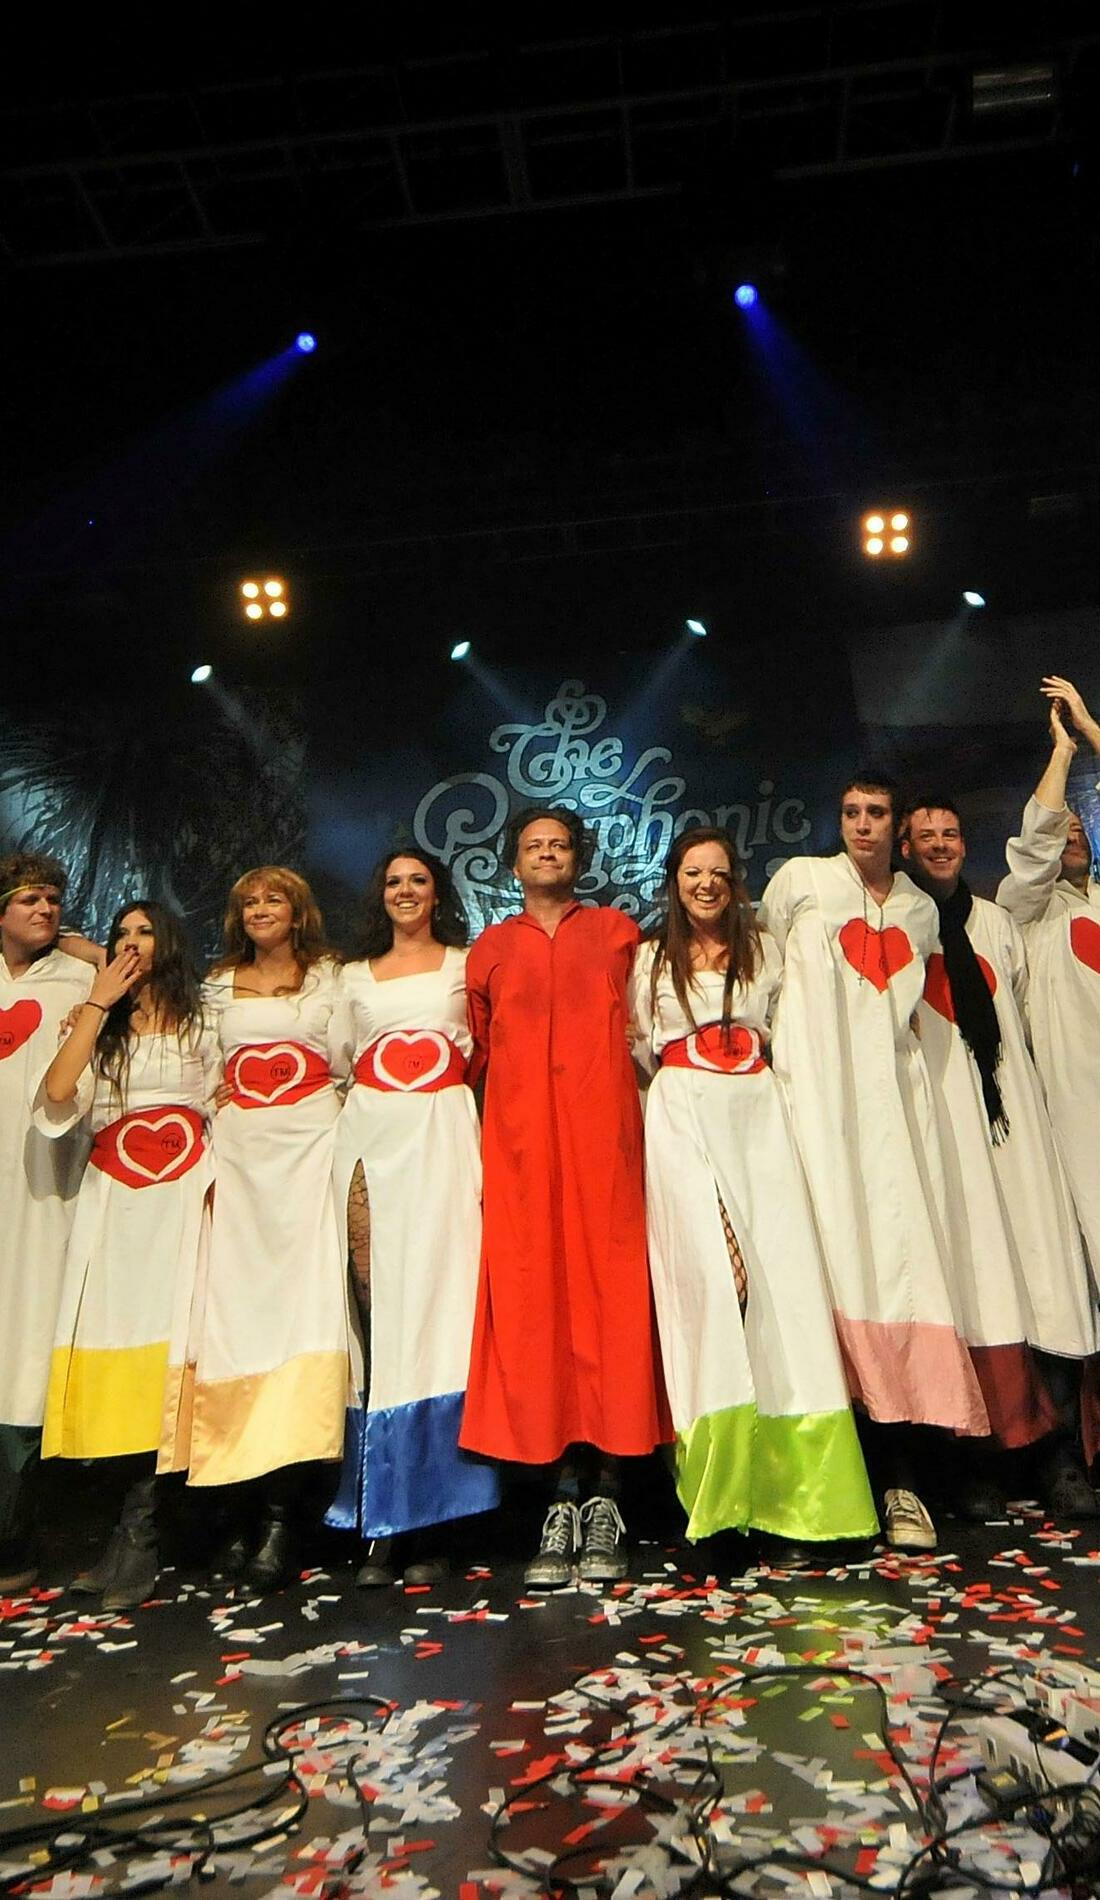 A The Polyphonic Spree live event